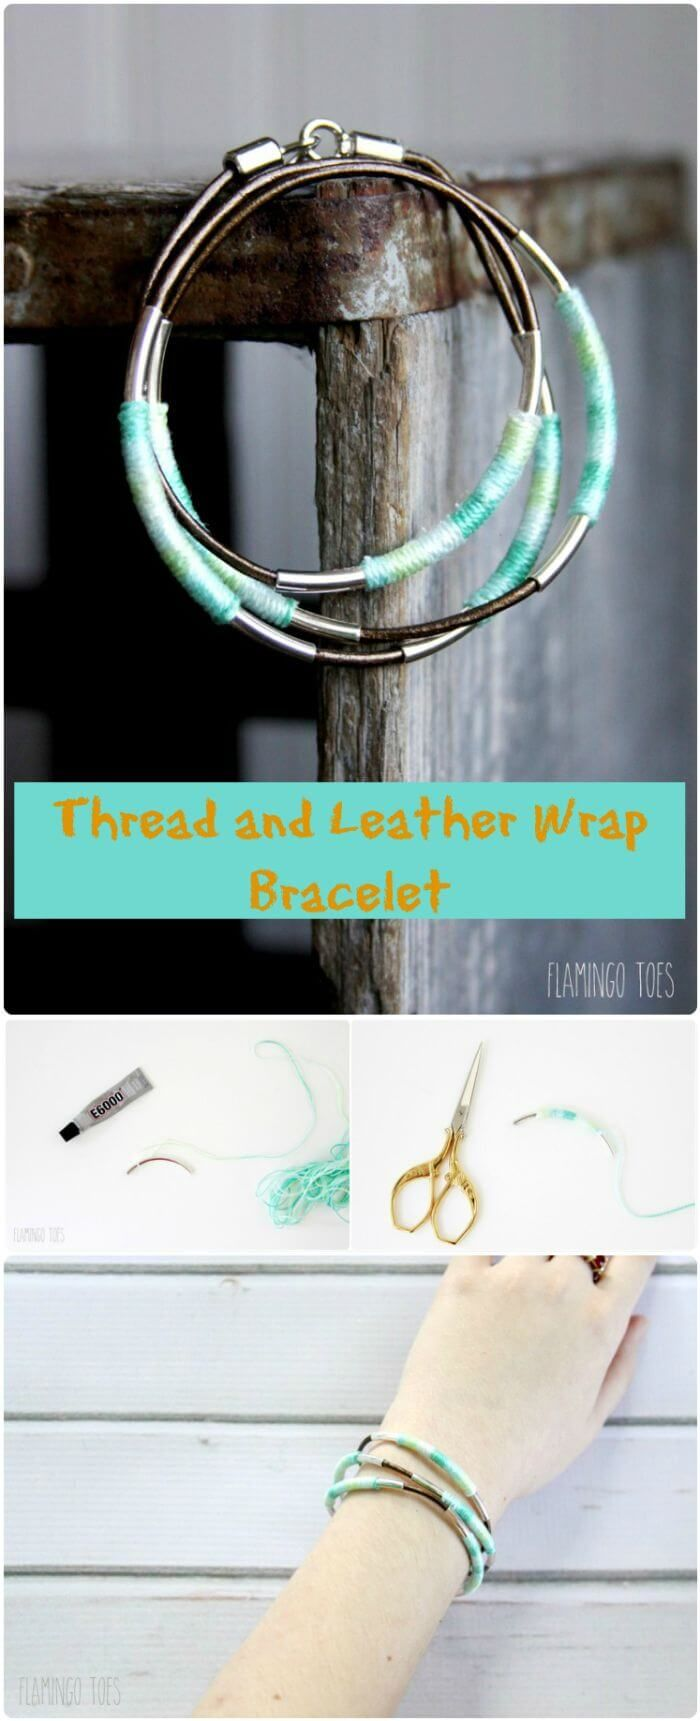 240 Easy Craft Ideas To Make And Sell Getting Crafty Easy Crafts